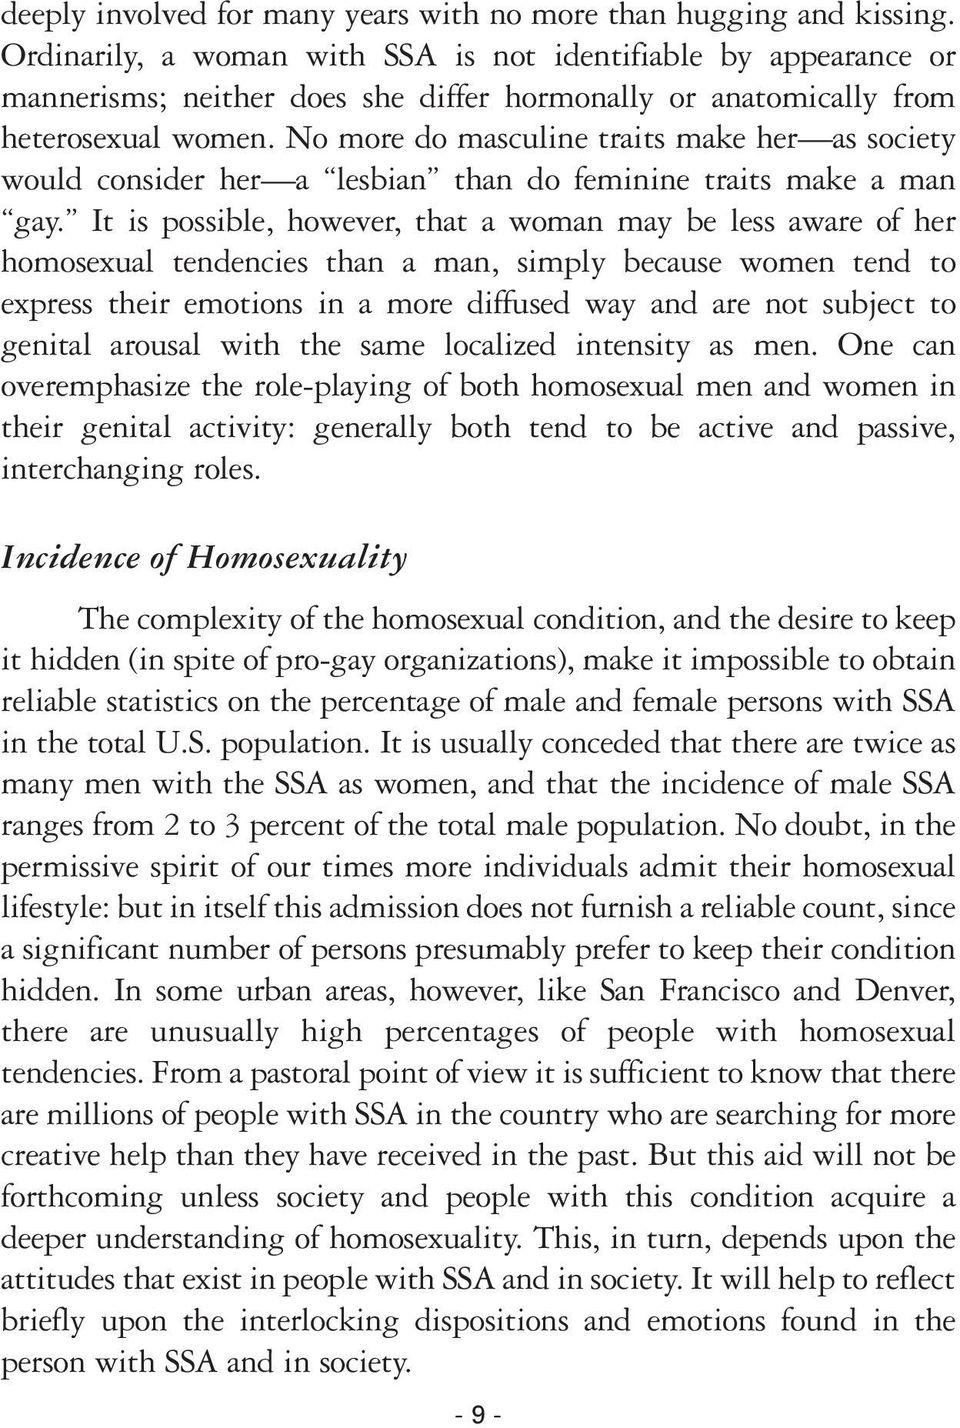 No more do masculine traits make her as society would consider her a lesbian than do feminine traits make a man gay.